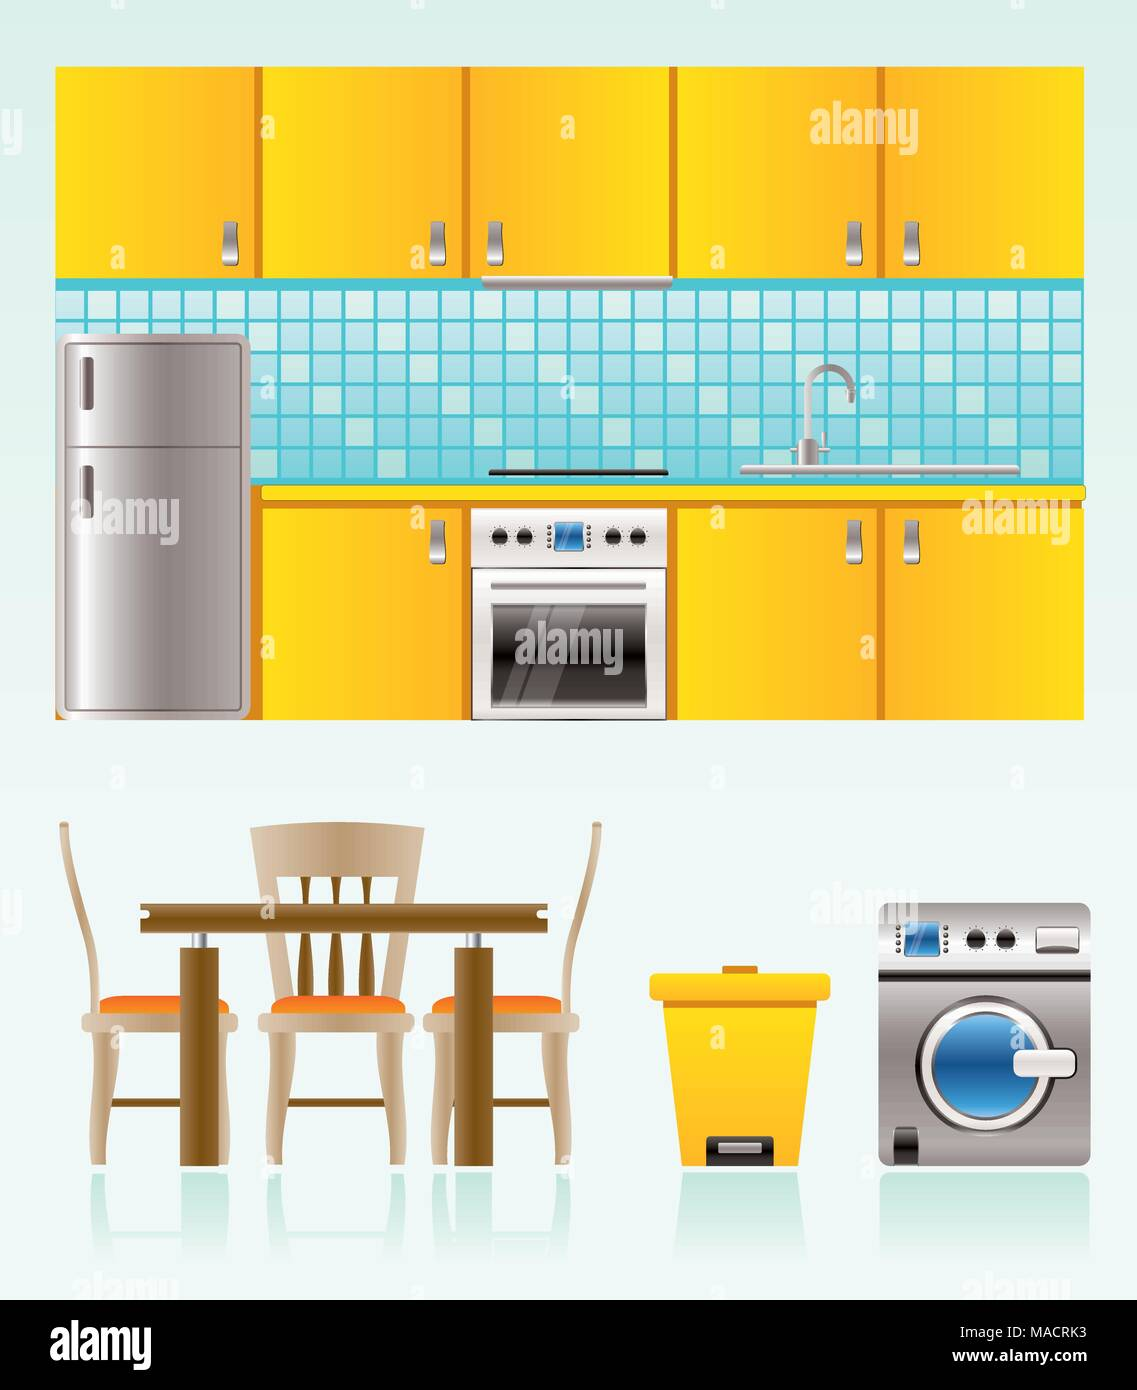 kitchen objects, furniture and equipment - vector illustration - Stock Vector